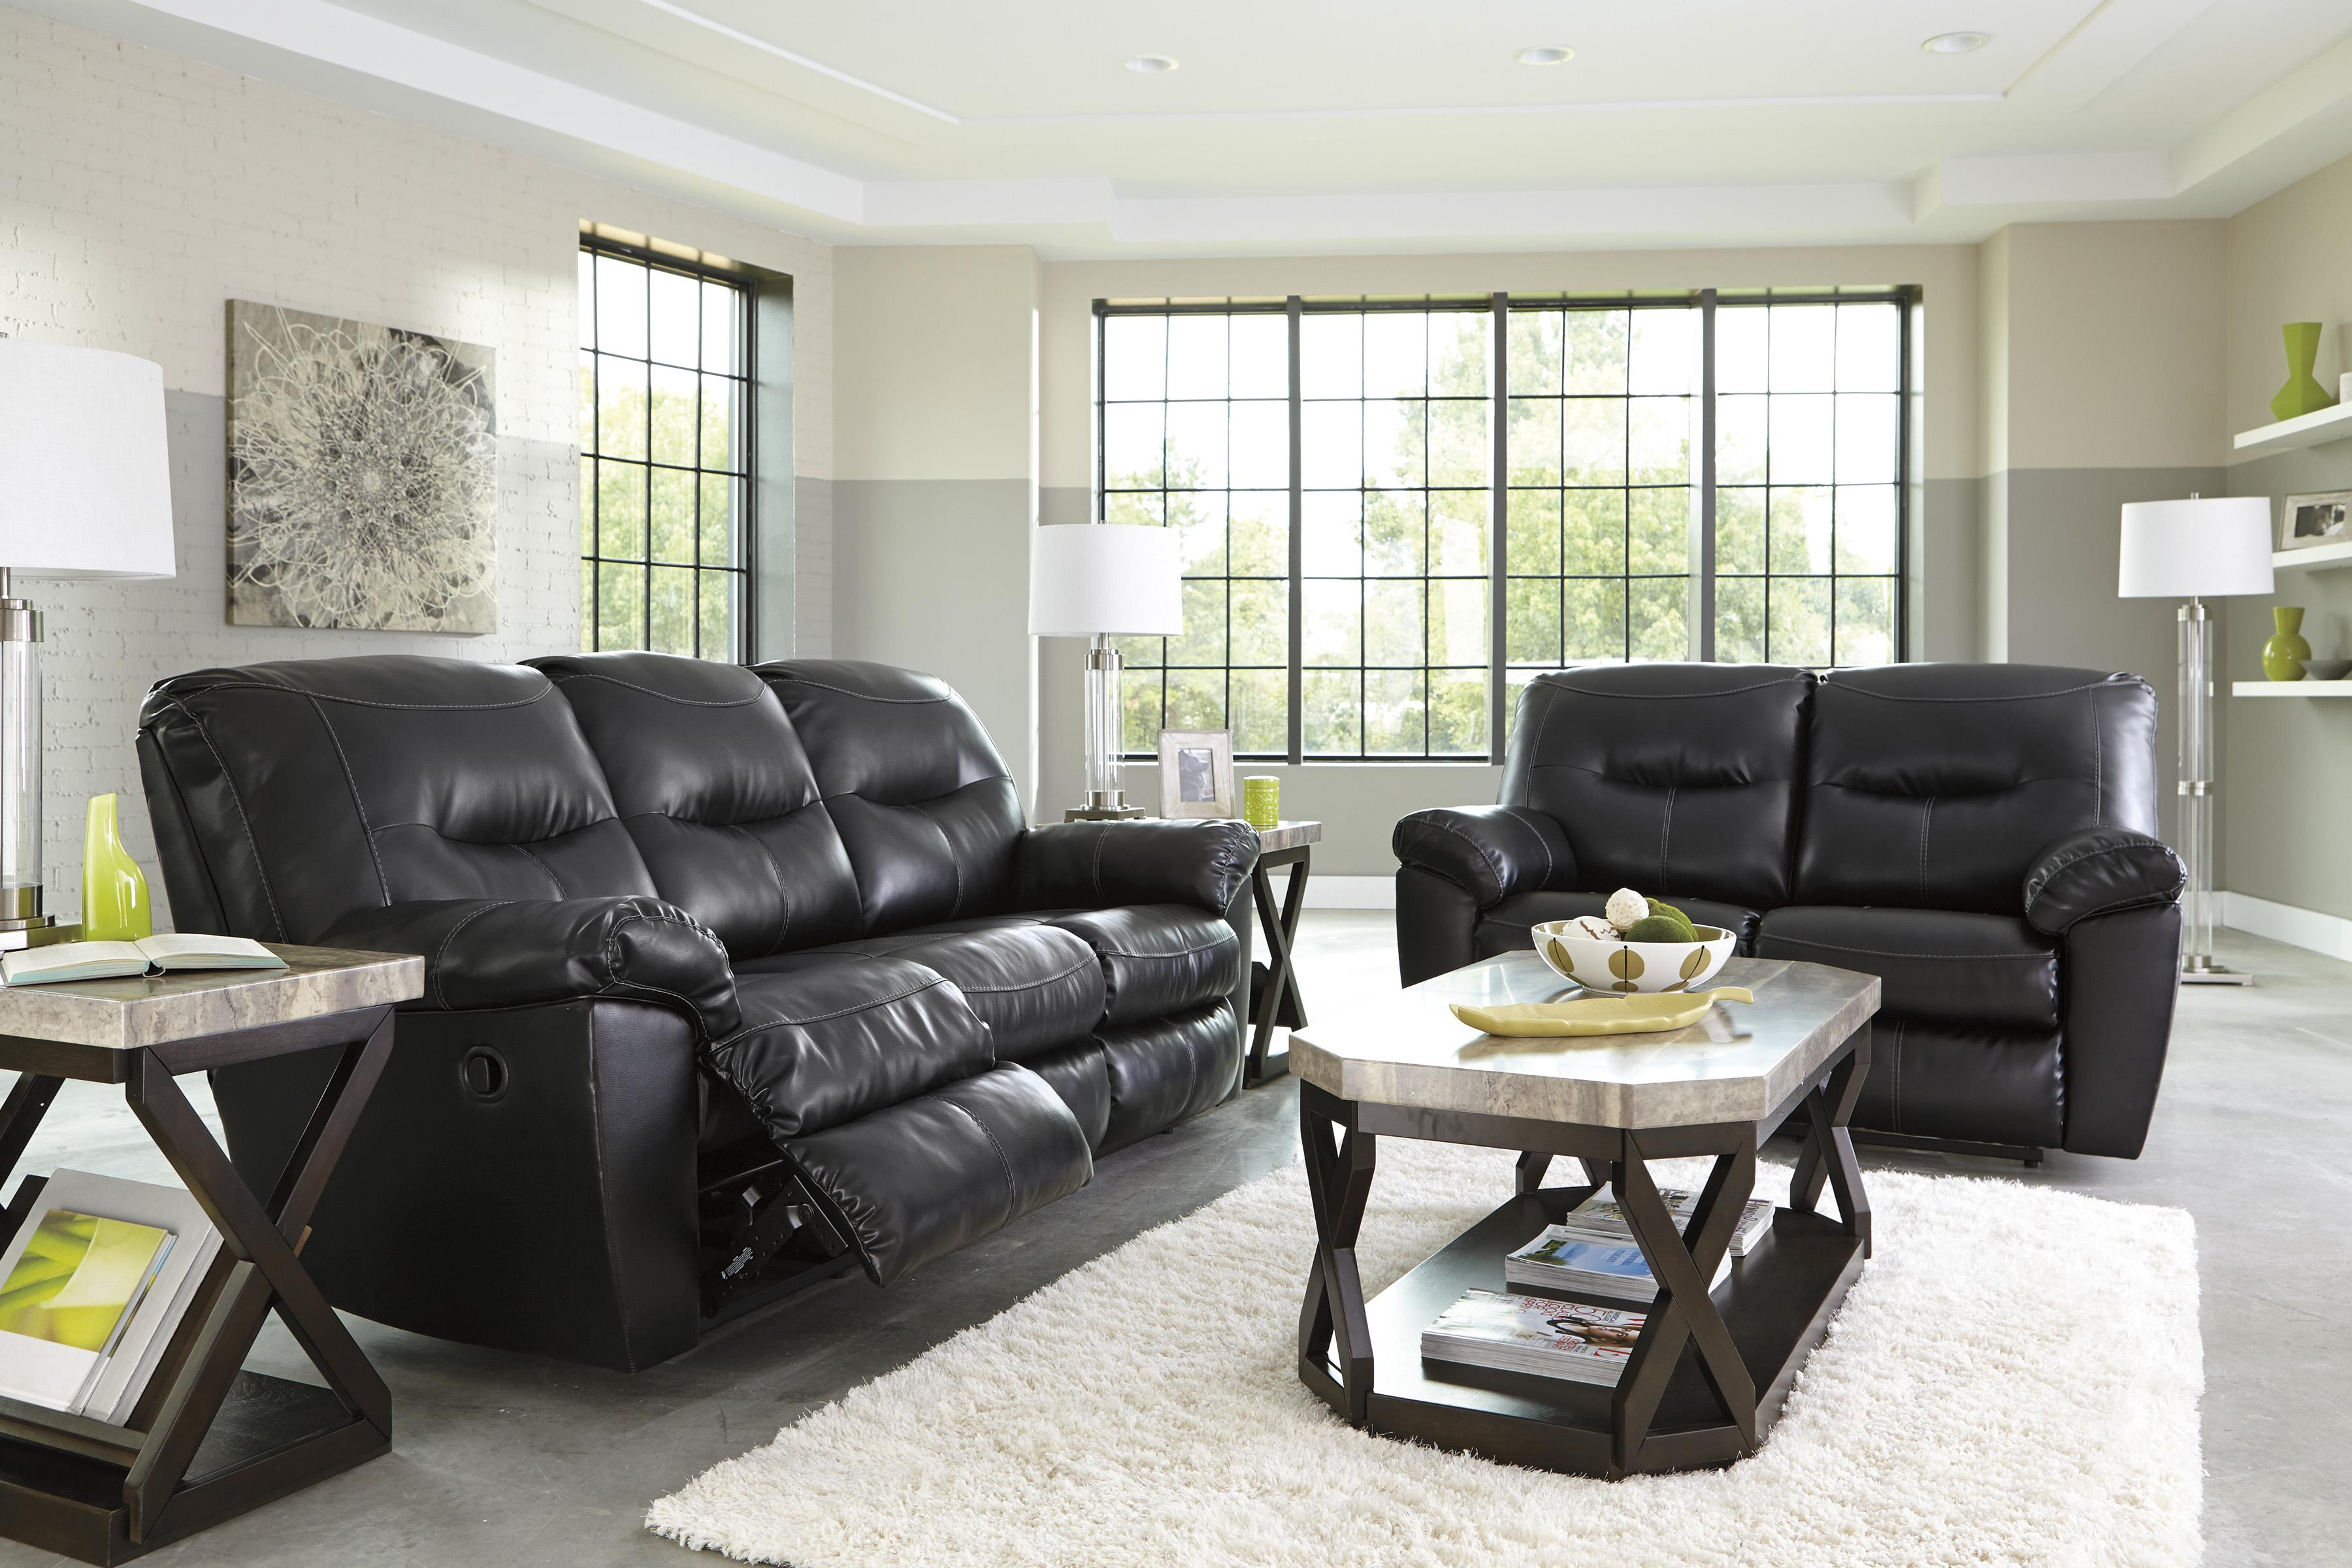 Faux Leather Contemporary Reclining Sofa & Faux Leather Contemporary Reclining Sofa by Signature Design by ... islam-shia.org